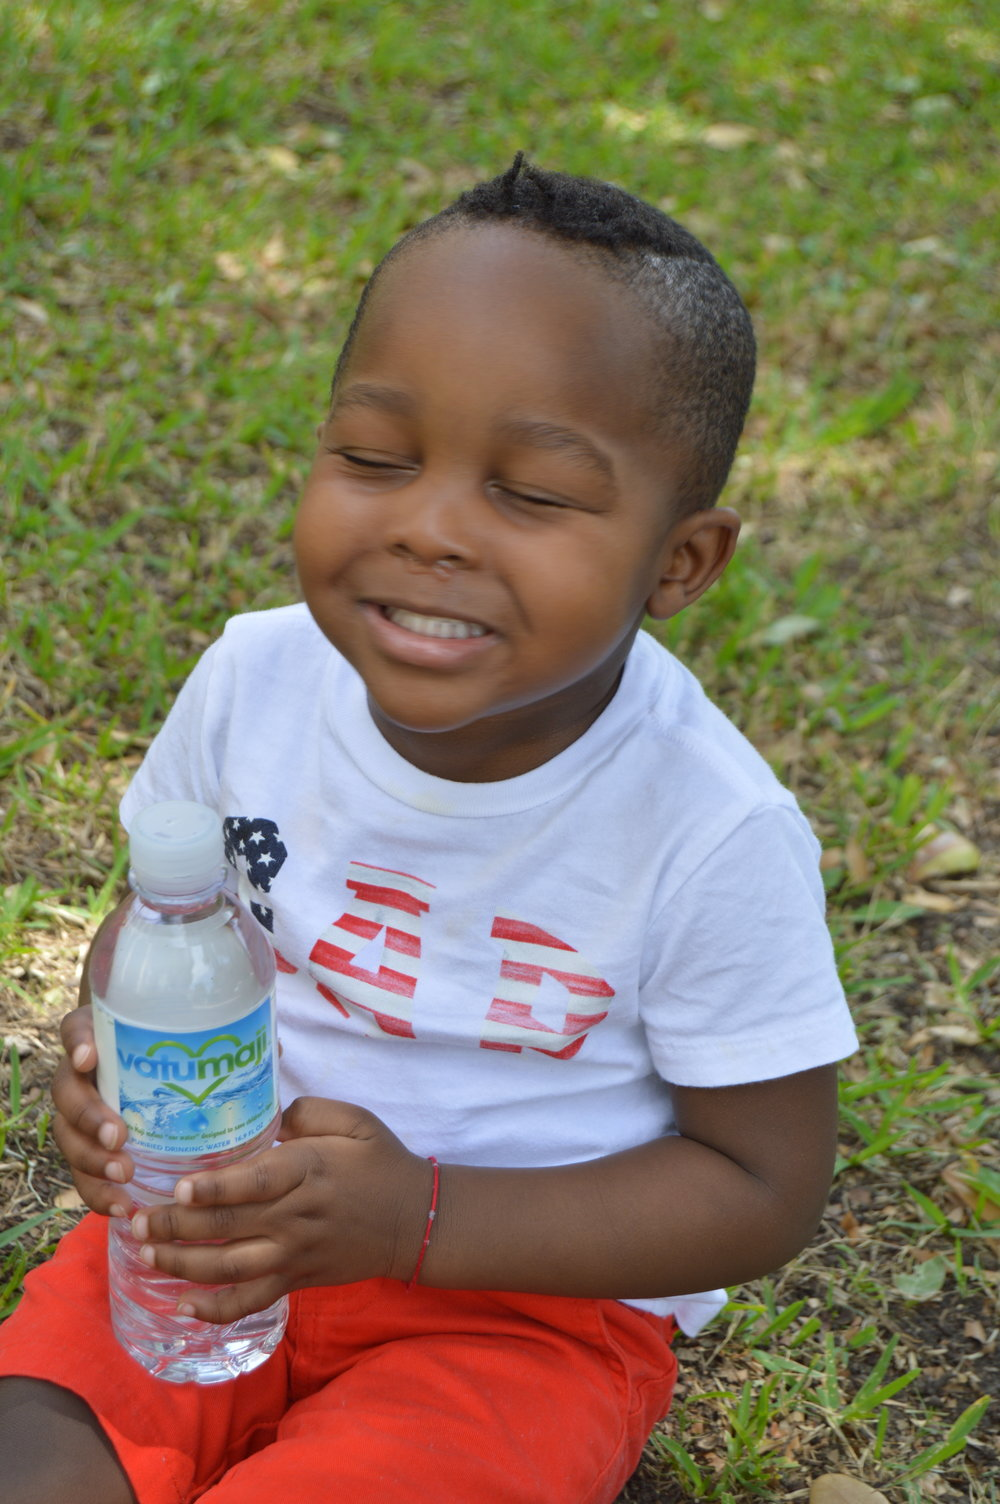 Access To Clean Water... - For children is our mission, Join us and let's put a smile on every child's face.